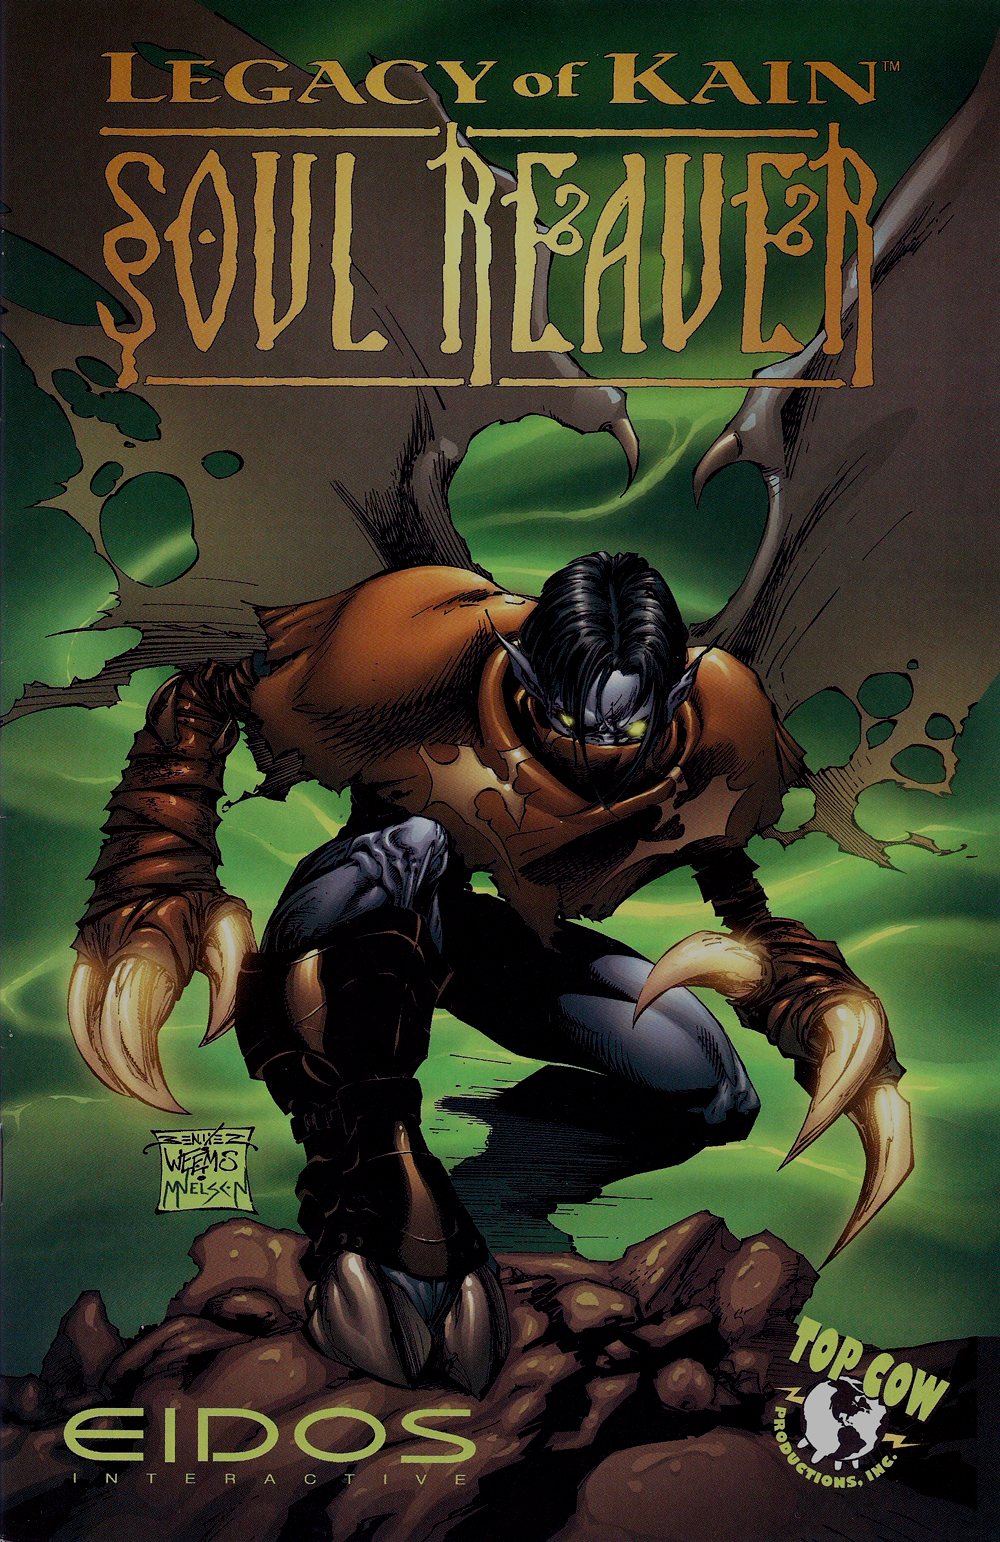 Legacy of Kain: Soul Reaver comic